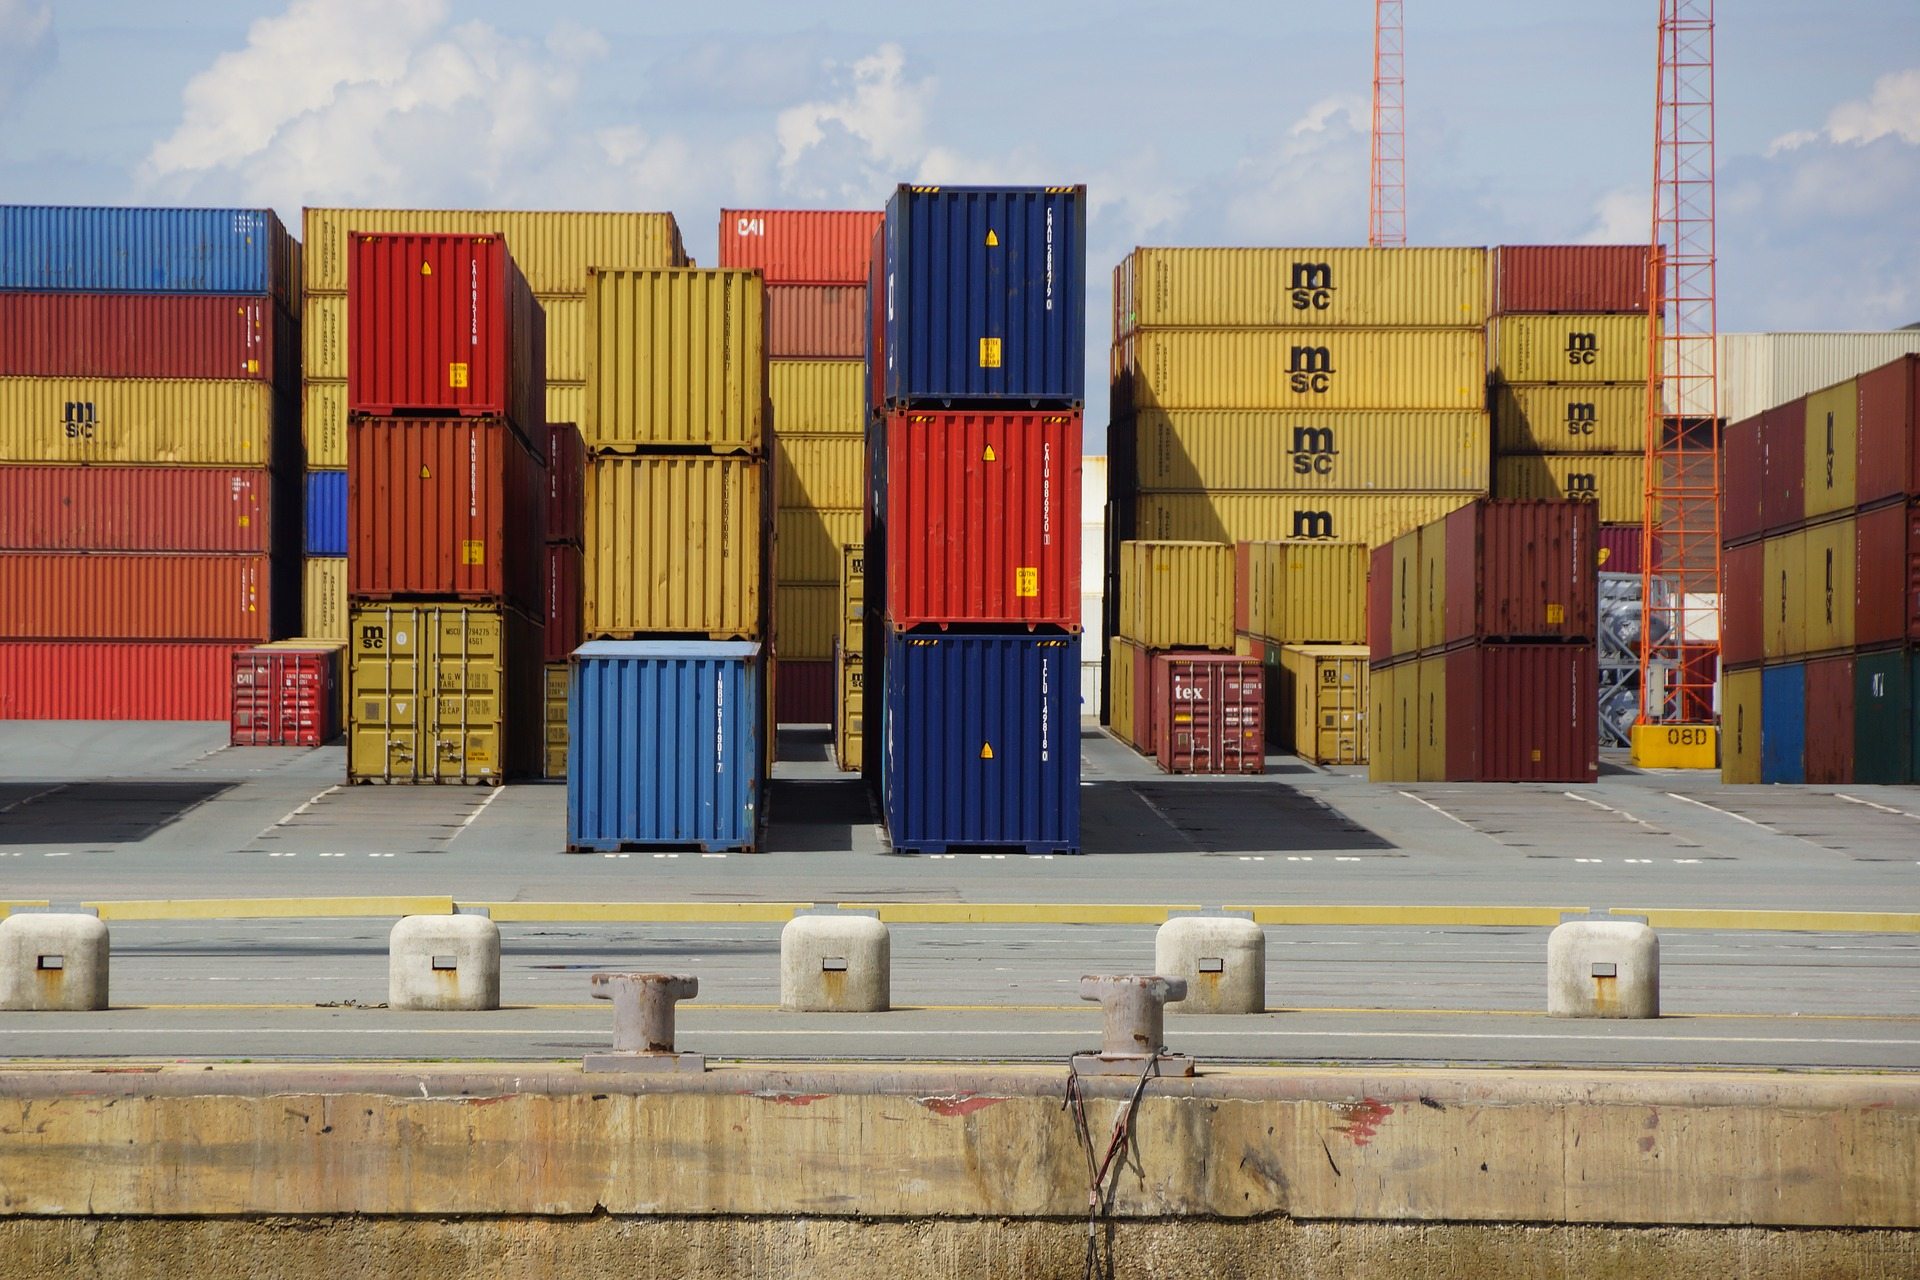 Supply chains: Transport, storage and distribution processes